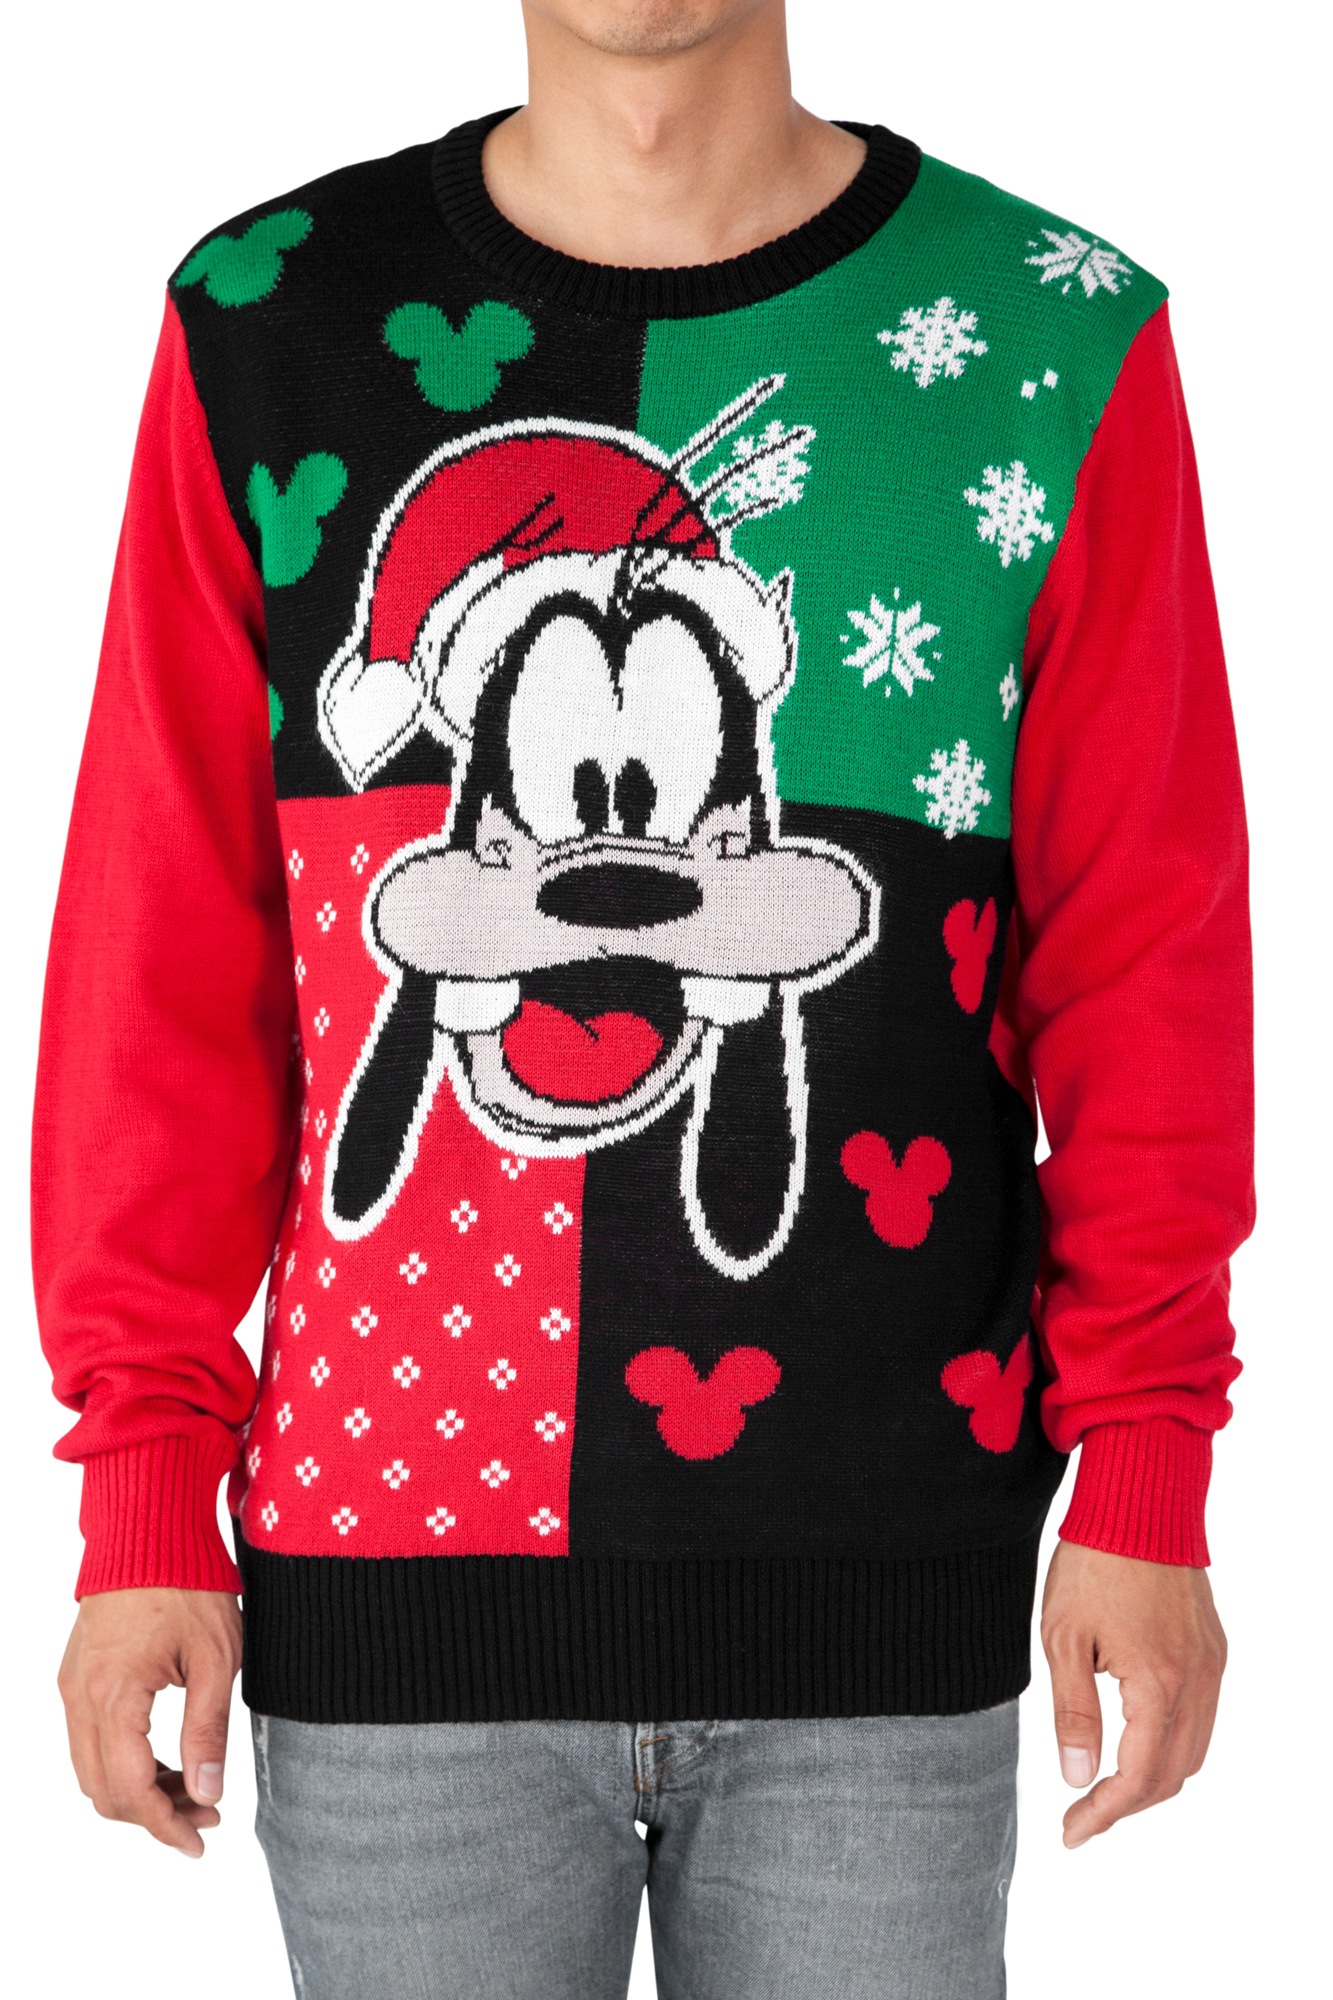 Disney Goofy Santa Men's Ugly Christmas Sweater